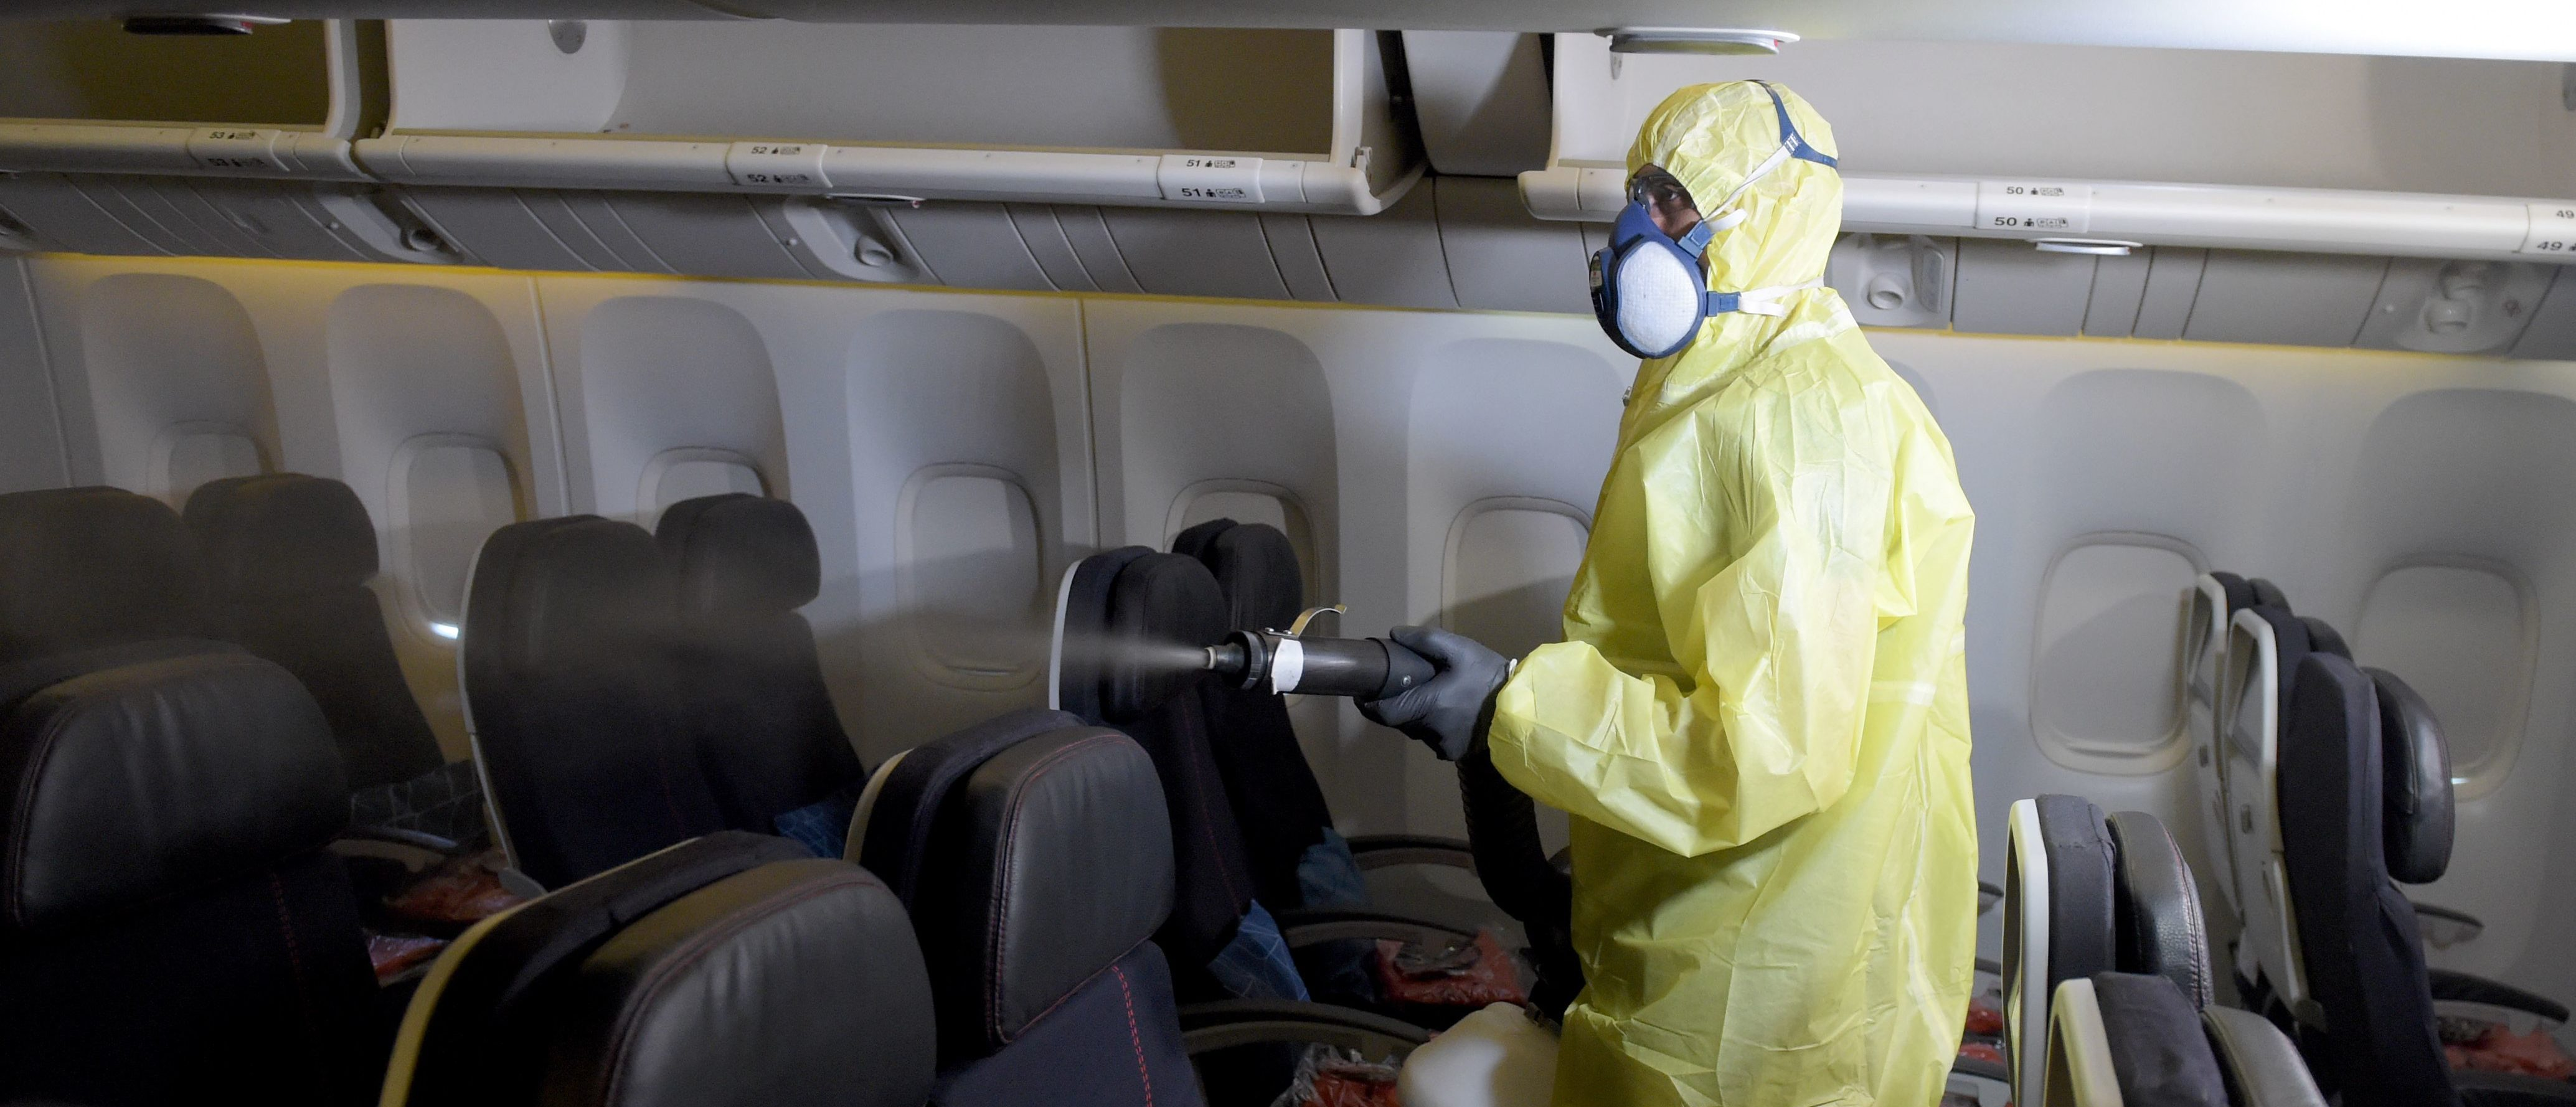 A worker disinfects the cabin area of an Air France aircraft at Roissy-Charles de Gaulle Airport on the outskirts of Paris on May 12, 2020. - As the world emerges from a lockdown situation, it is imperative for airlines survival that their clients return to the skies as soon as possible. This does not seem to be a foregone conclusion: only 14 per cent of consumers would get back on a plane as soon as traffic restrictions are lifted, 40 per cent would wait six months or more, and the majority would wait one or two months, according to a survey conducted in 11 countries by the International Air Transport Association (IATA), which groups 290 airlines. (Photo by ERIC PIERMONT / AFP) (Photo by ERIC PIERMONT/AFP via Getty Images)